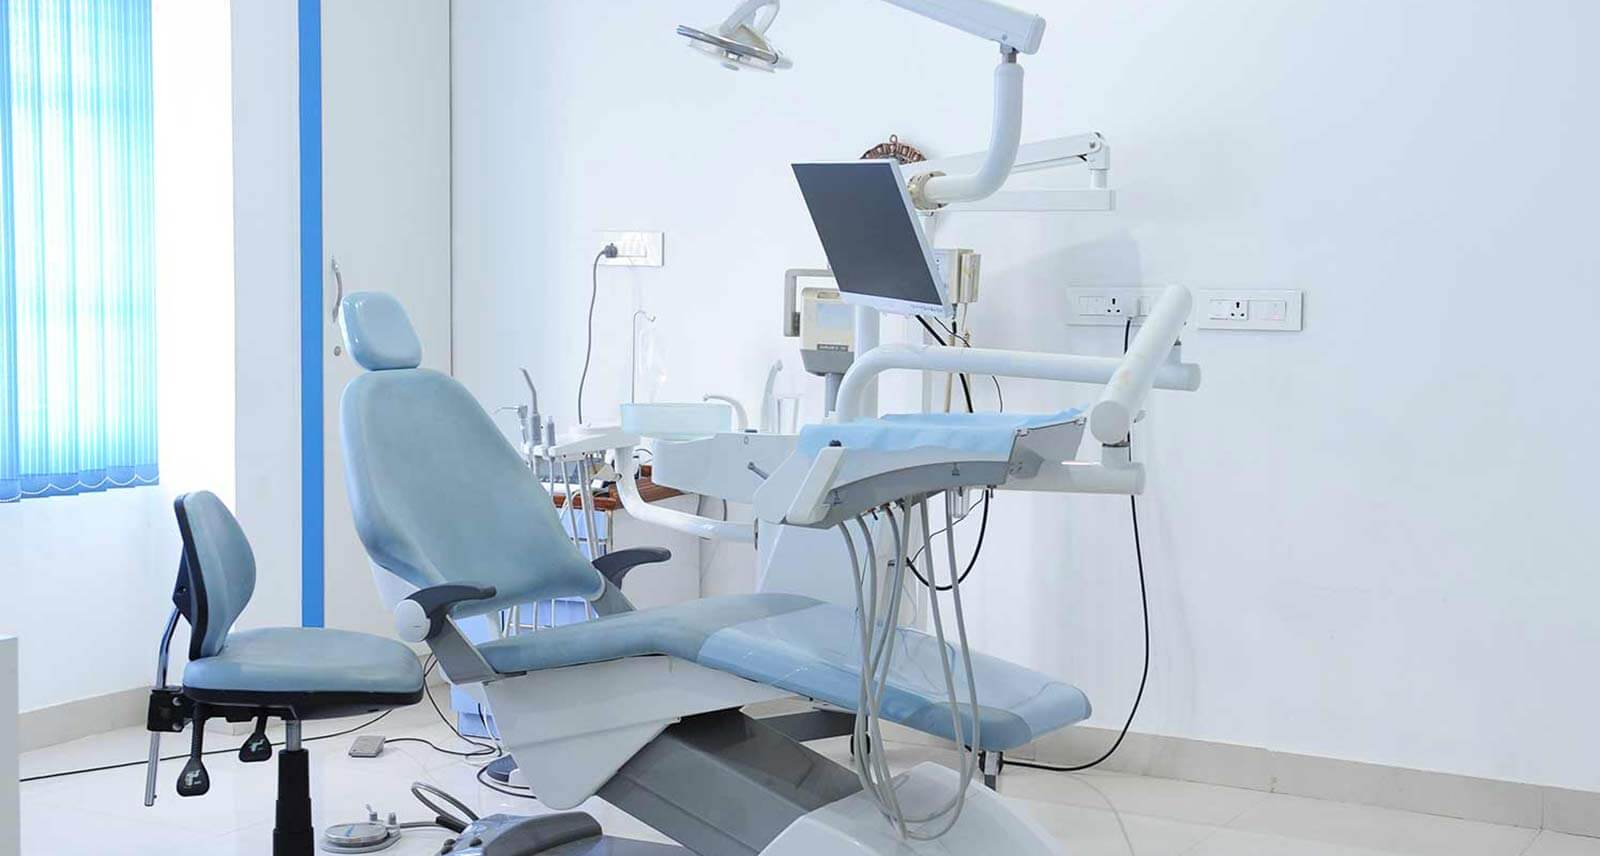 implantologist in vijayanagar bangalore, dental clinic in bangalore, dental implant course in bangalore